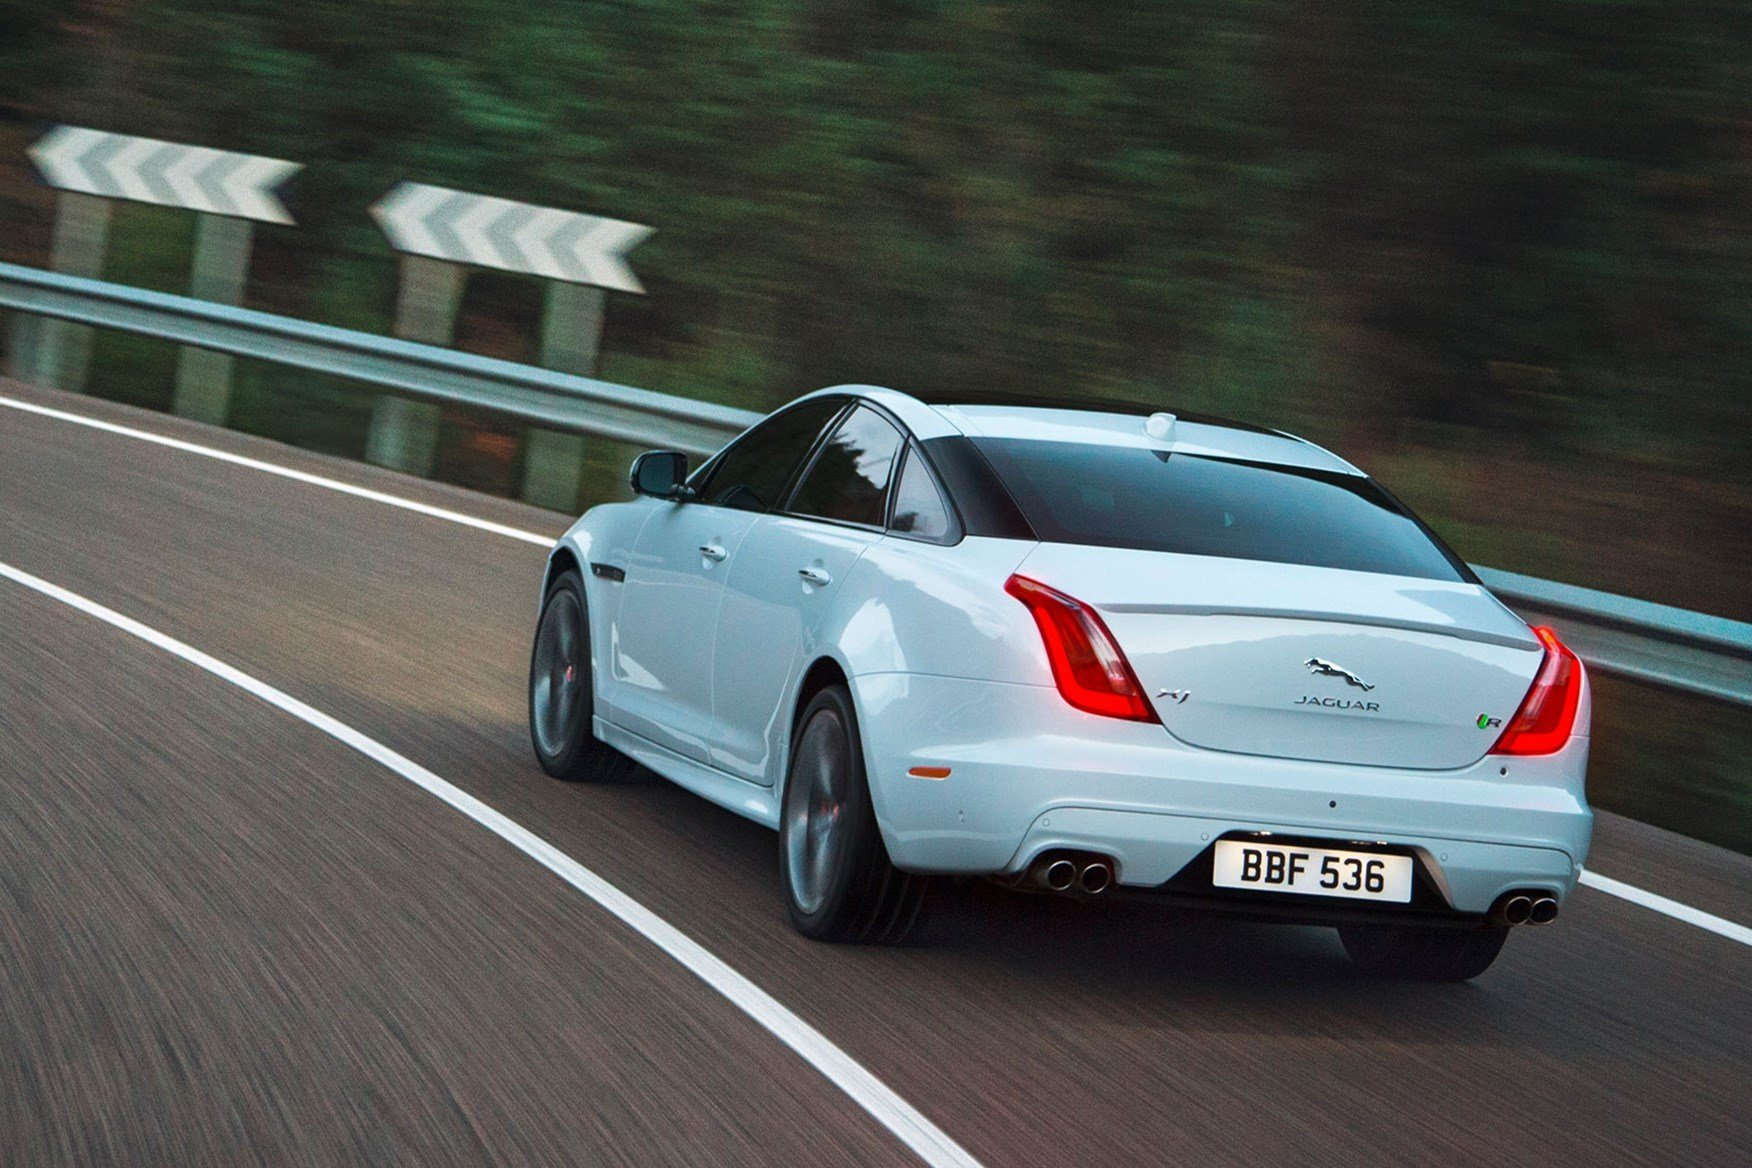 New The £100K Jag 2016 Jaguar Xj Goes Seriously Premium Car On This Month